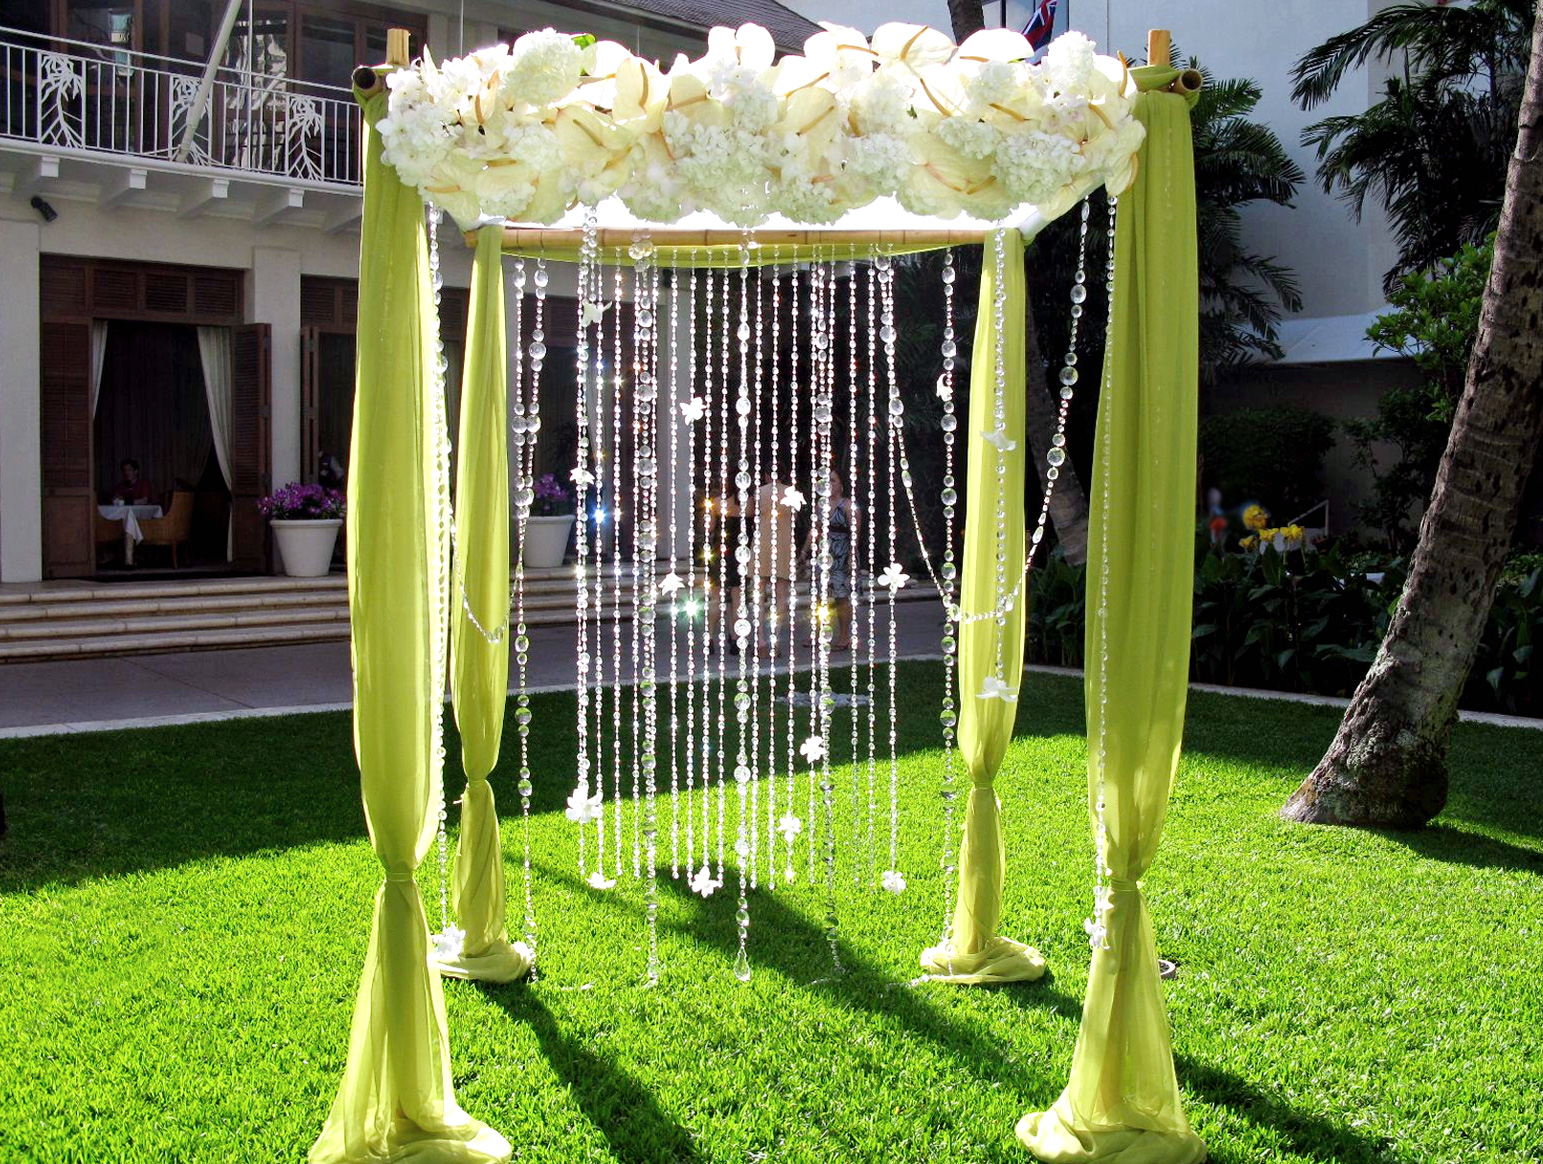 Wedding decoration outdoor wedding decorations ideas outdoor wedding decorations ideas junglespirit Choice Image